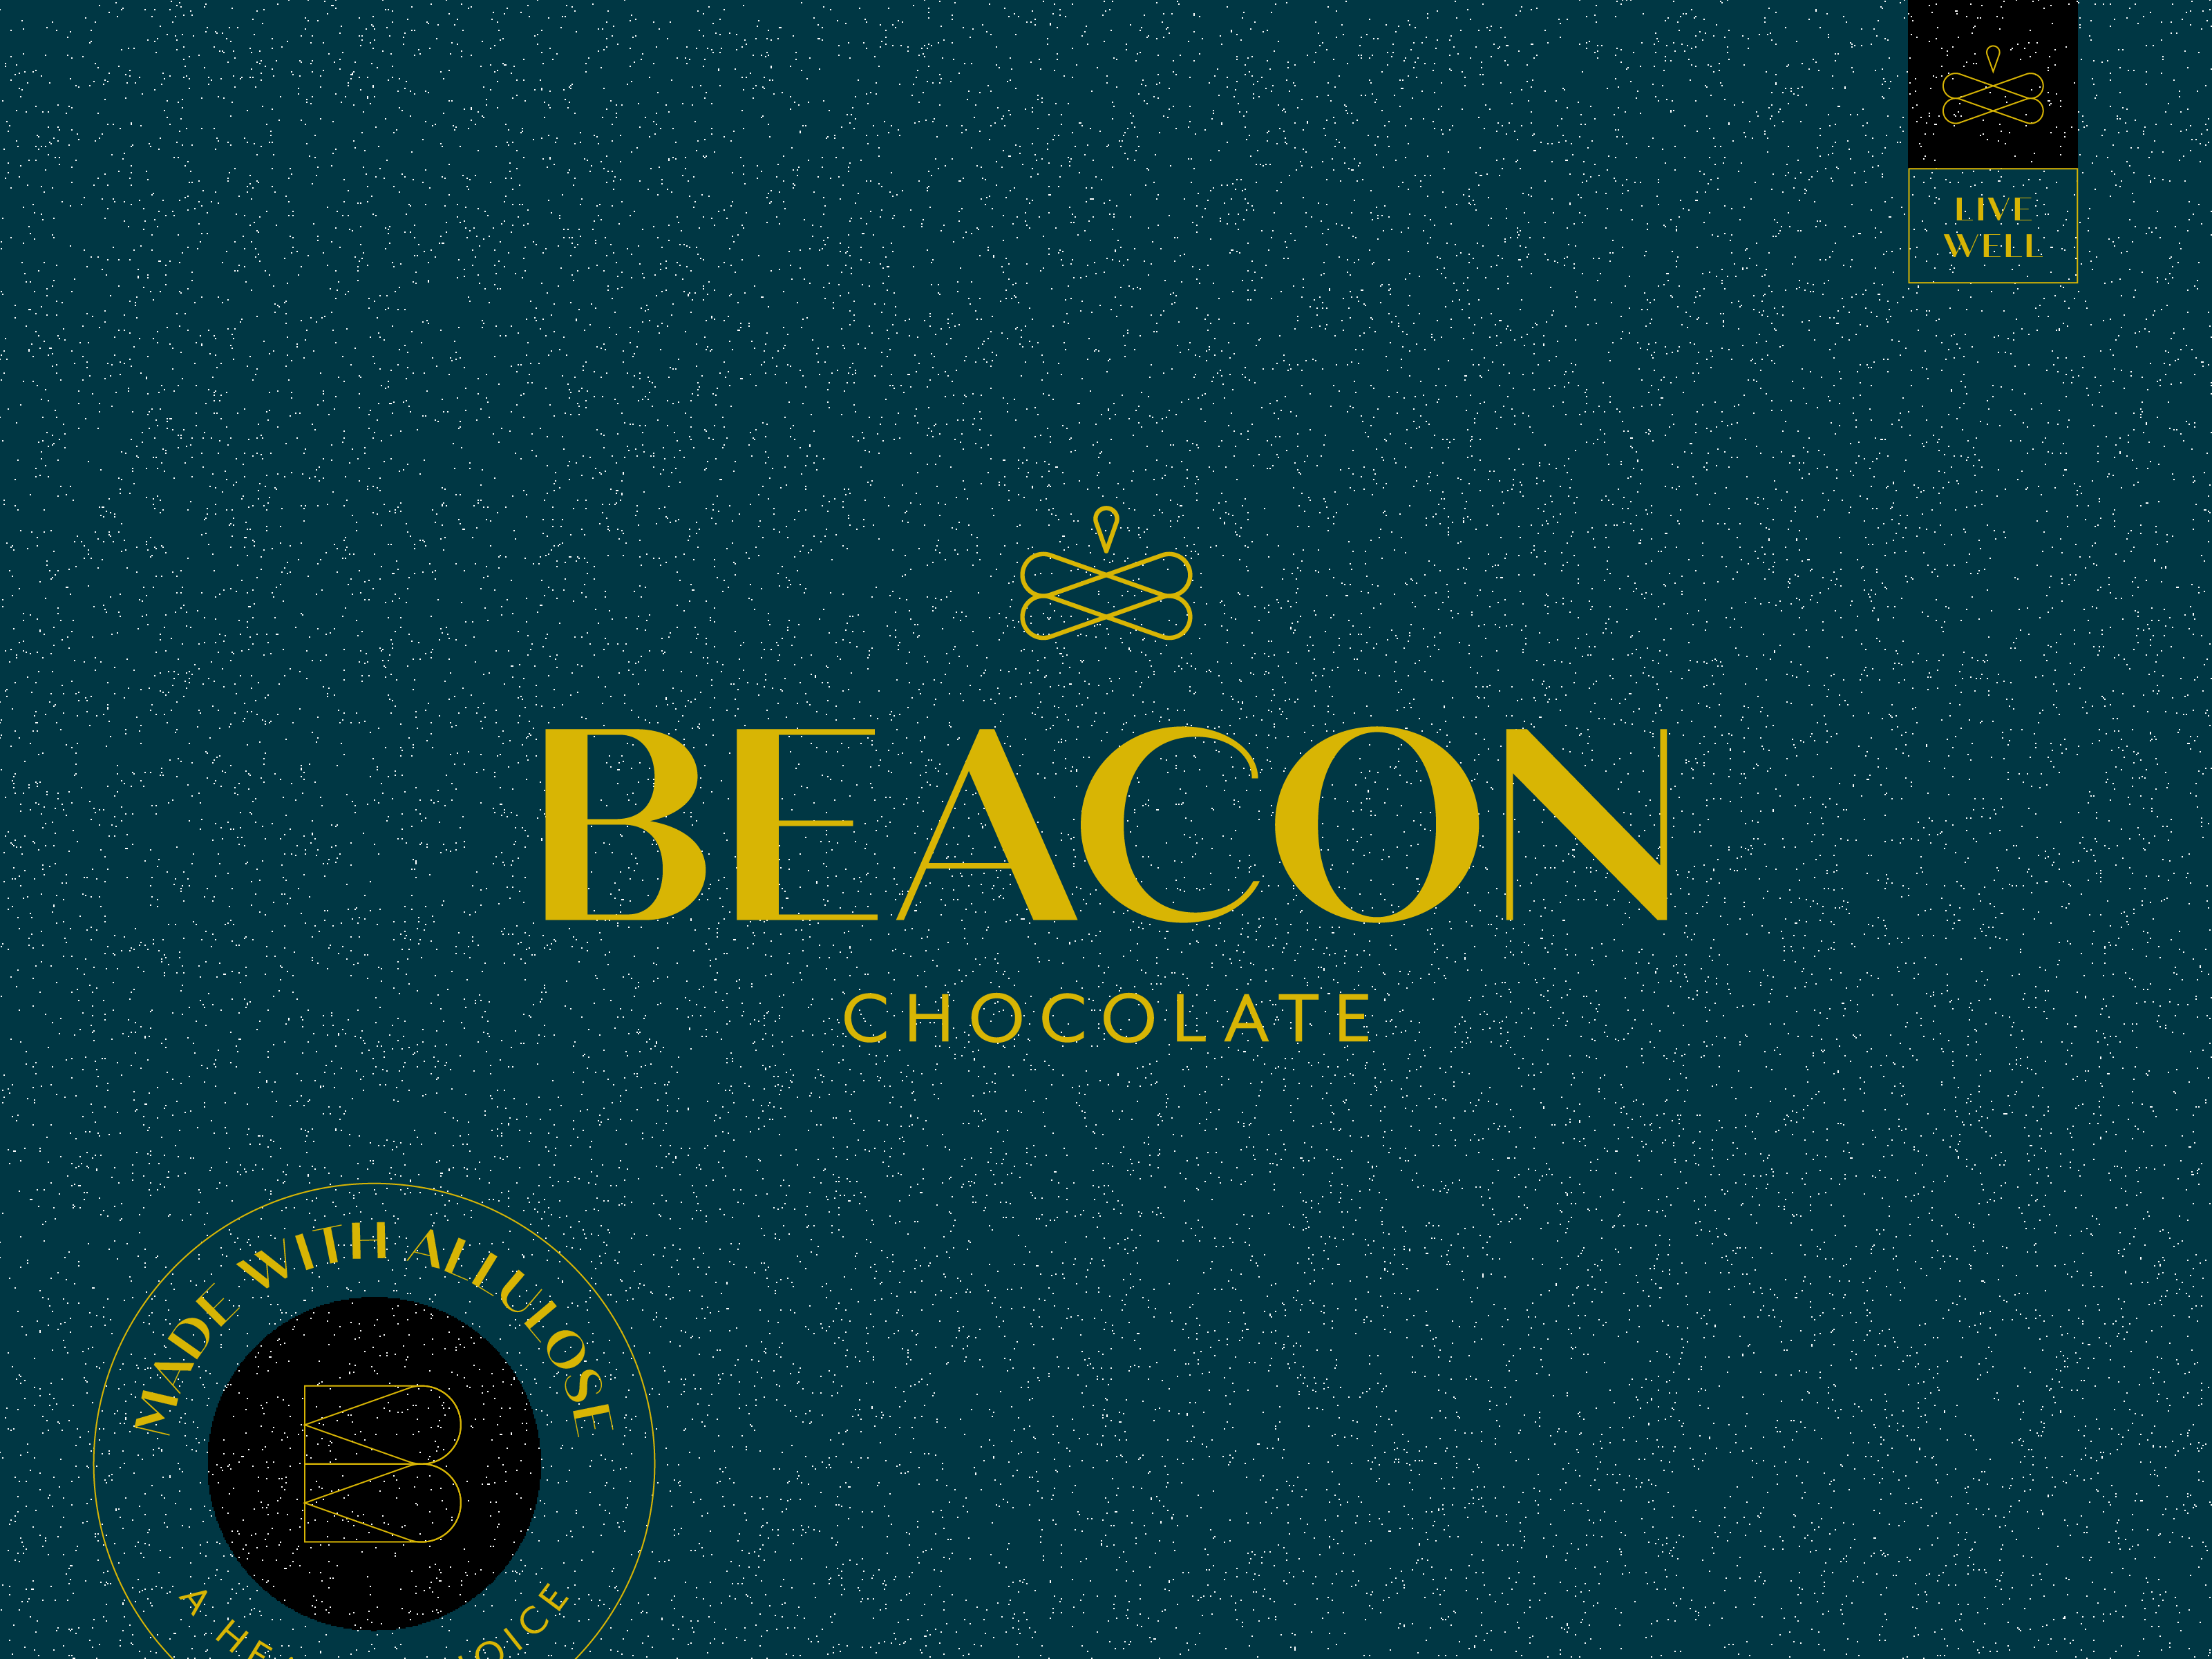 Beacon Chocolates Badge copy 4@2x